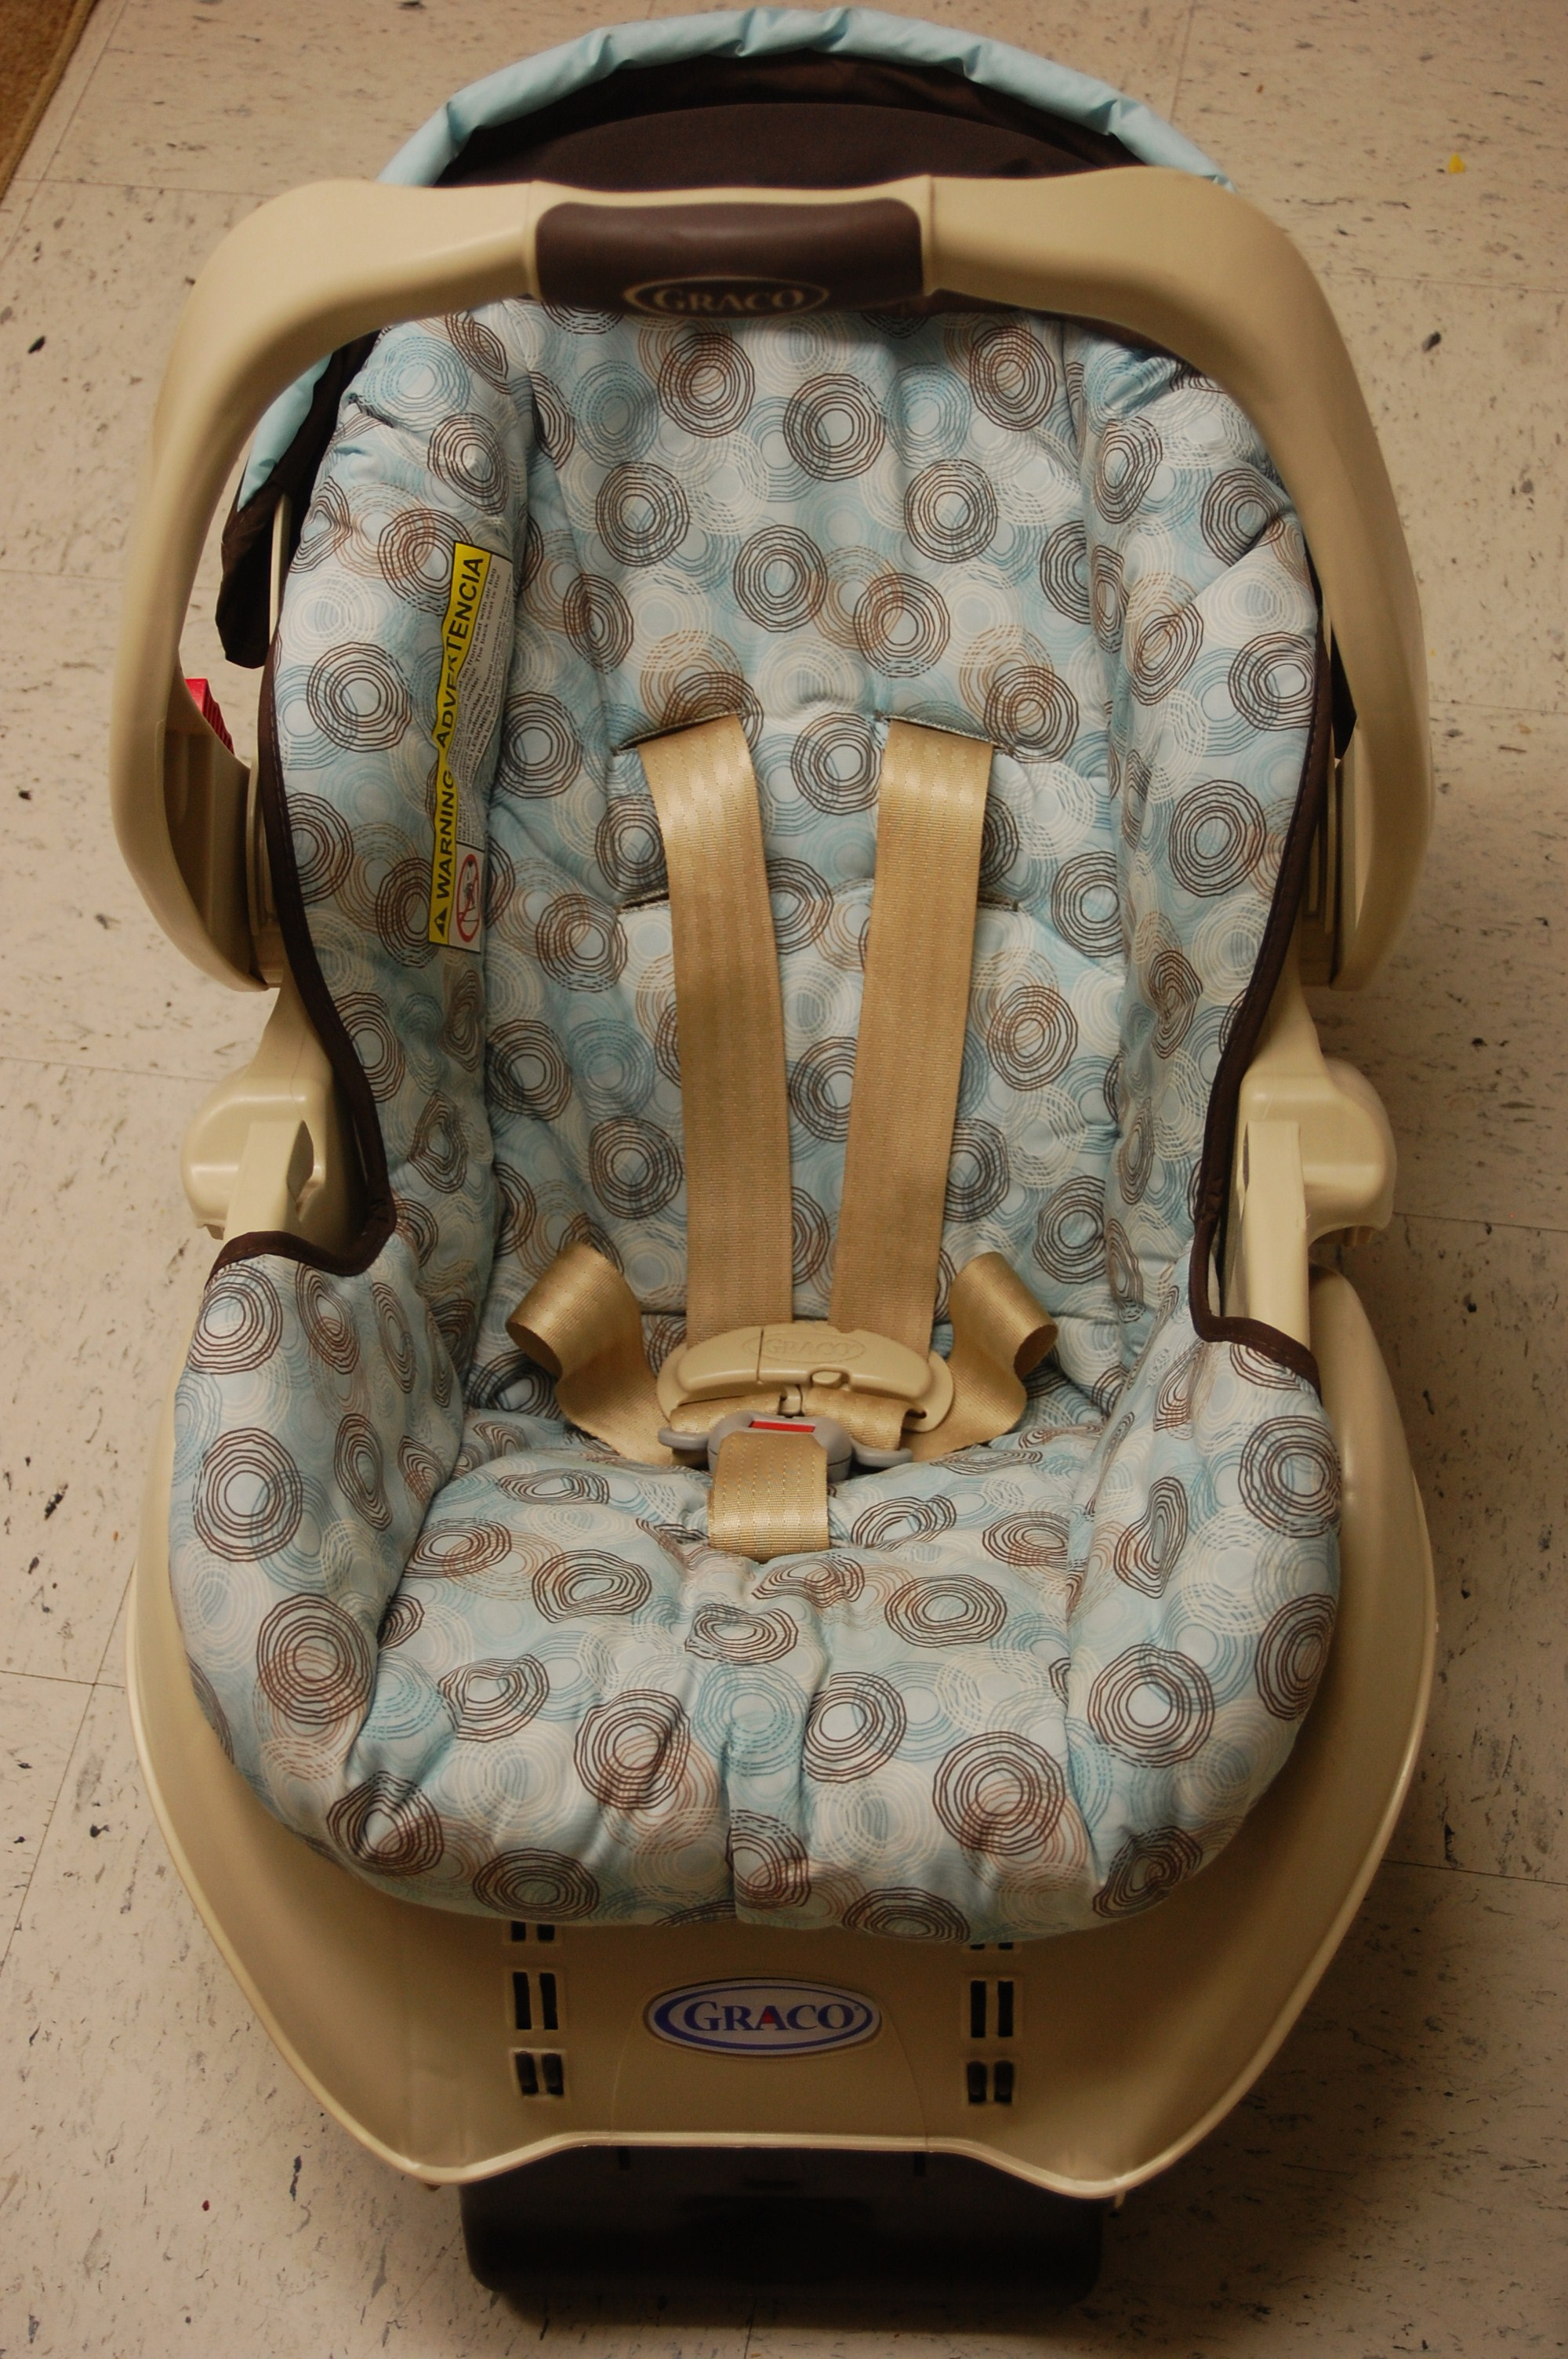 This Carseat Is Pristine The Stickers Arent Rubbed Off There Not A Crumb Nor Stain To Be Found All Of Parts Are And While It May Look